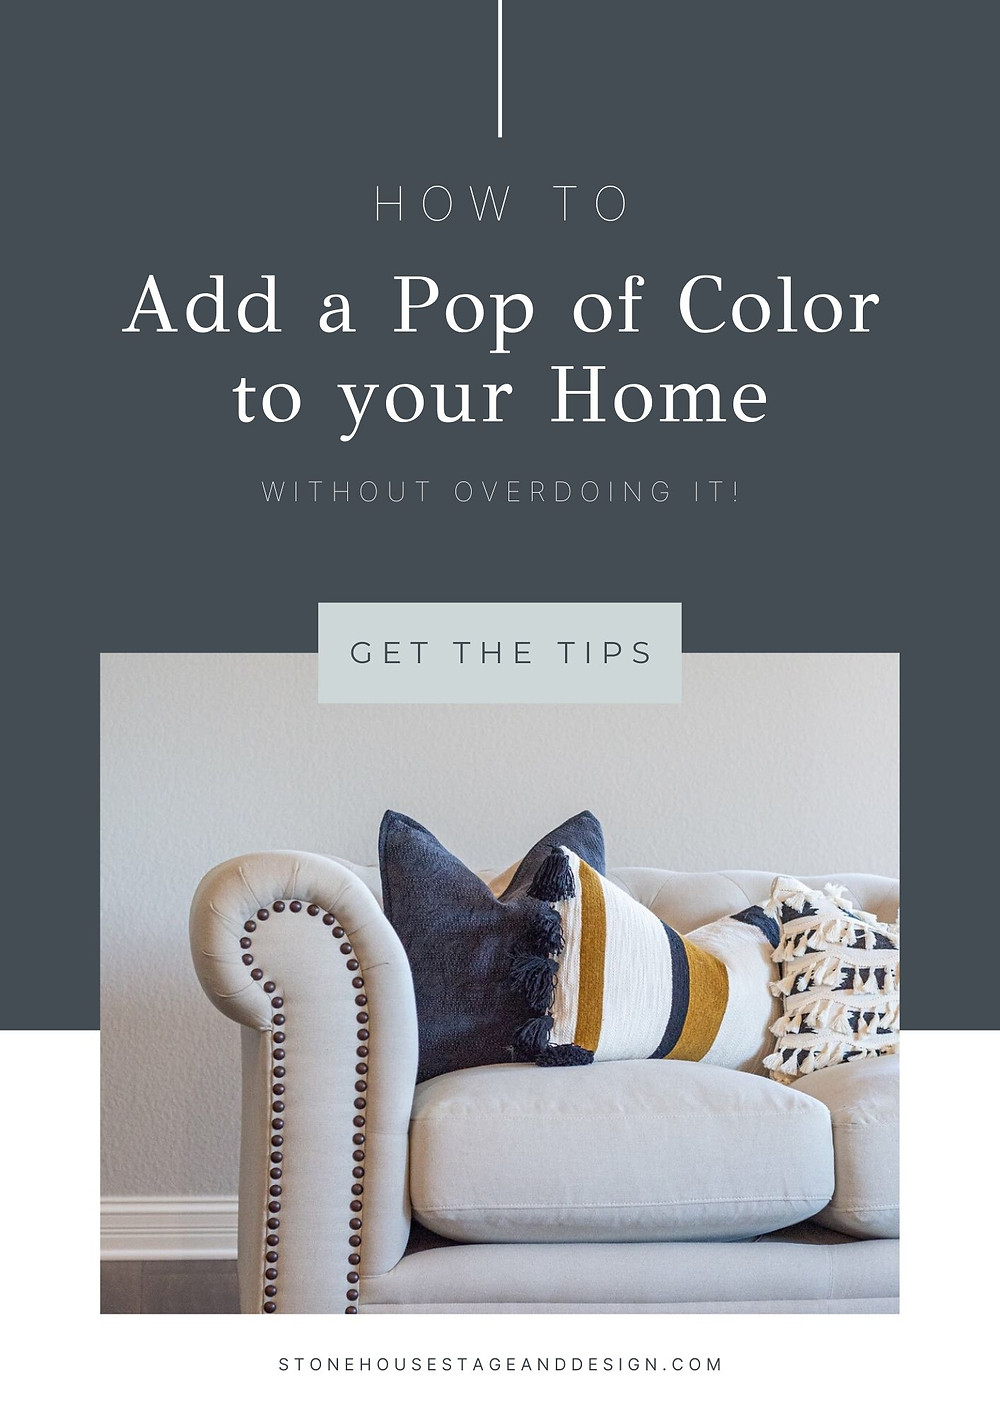 how to add a pop of color to your home without overdoing it